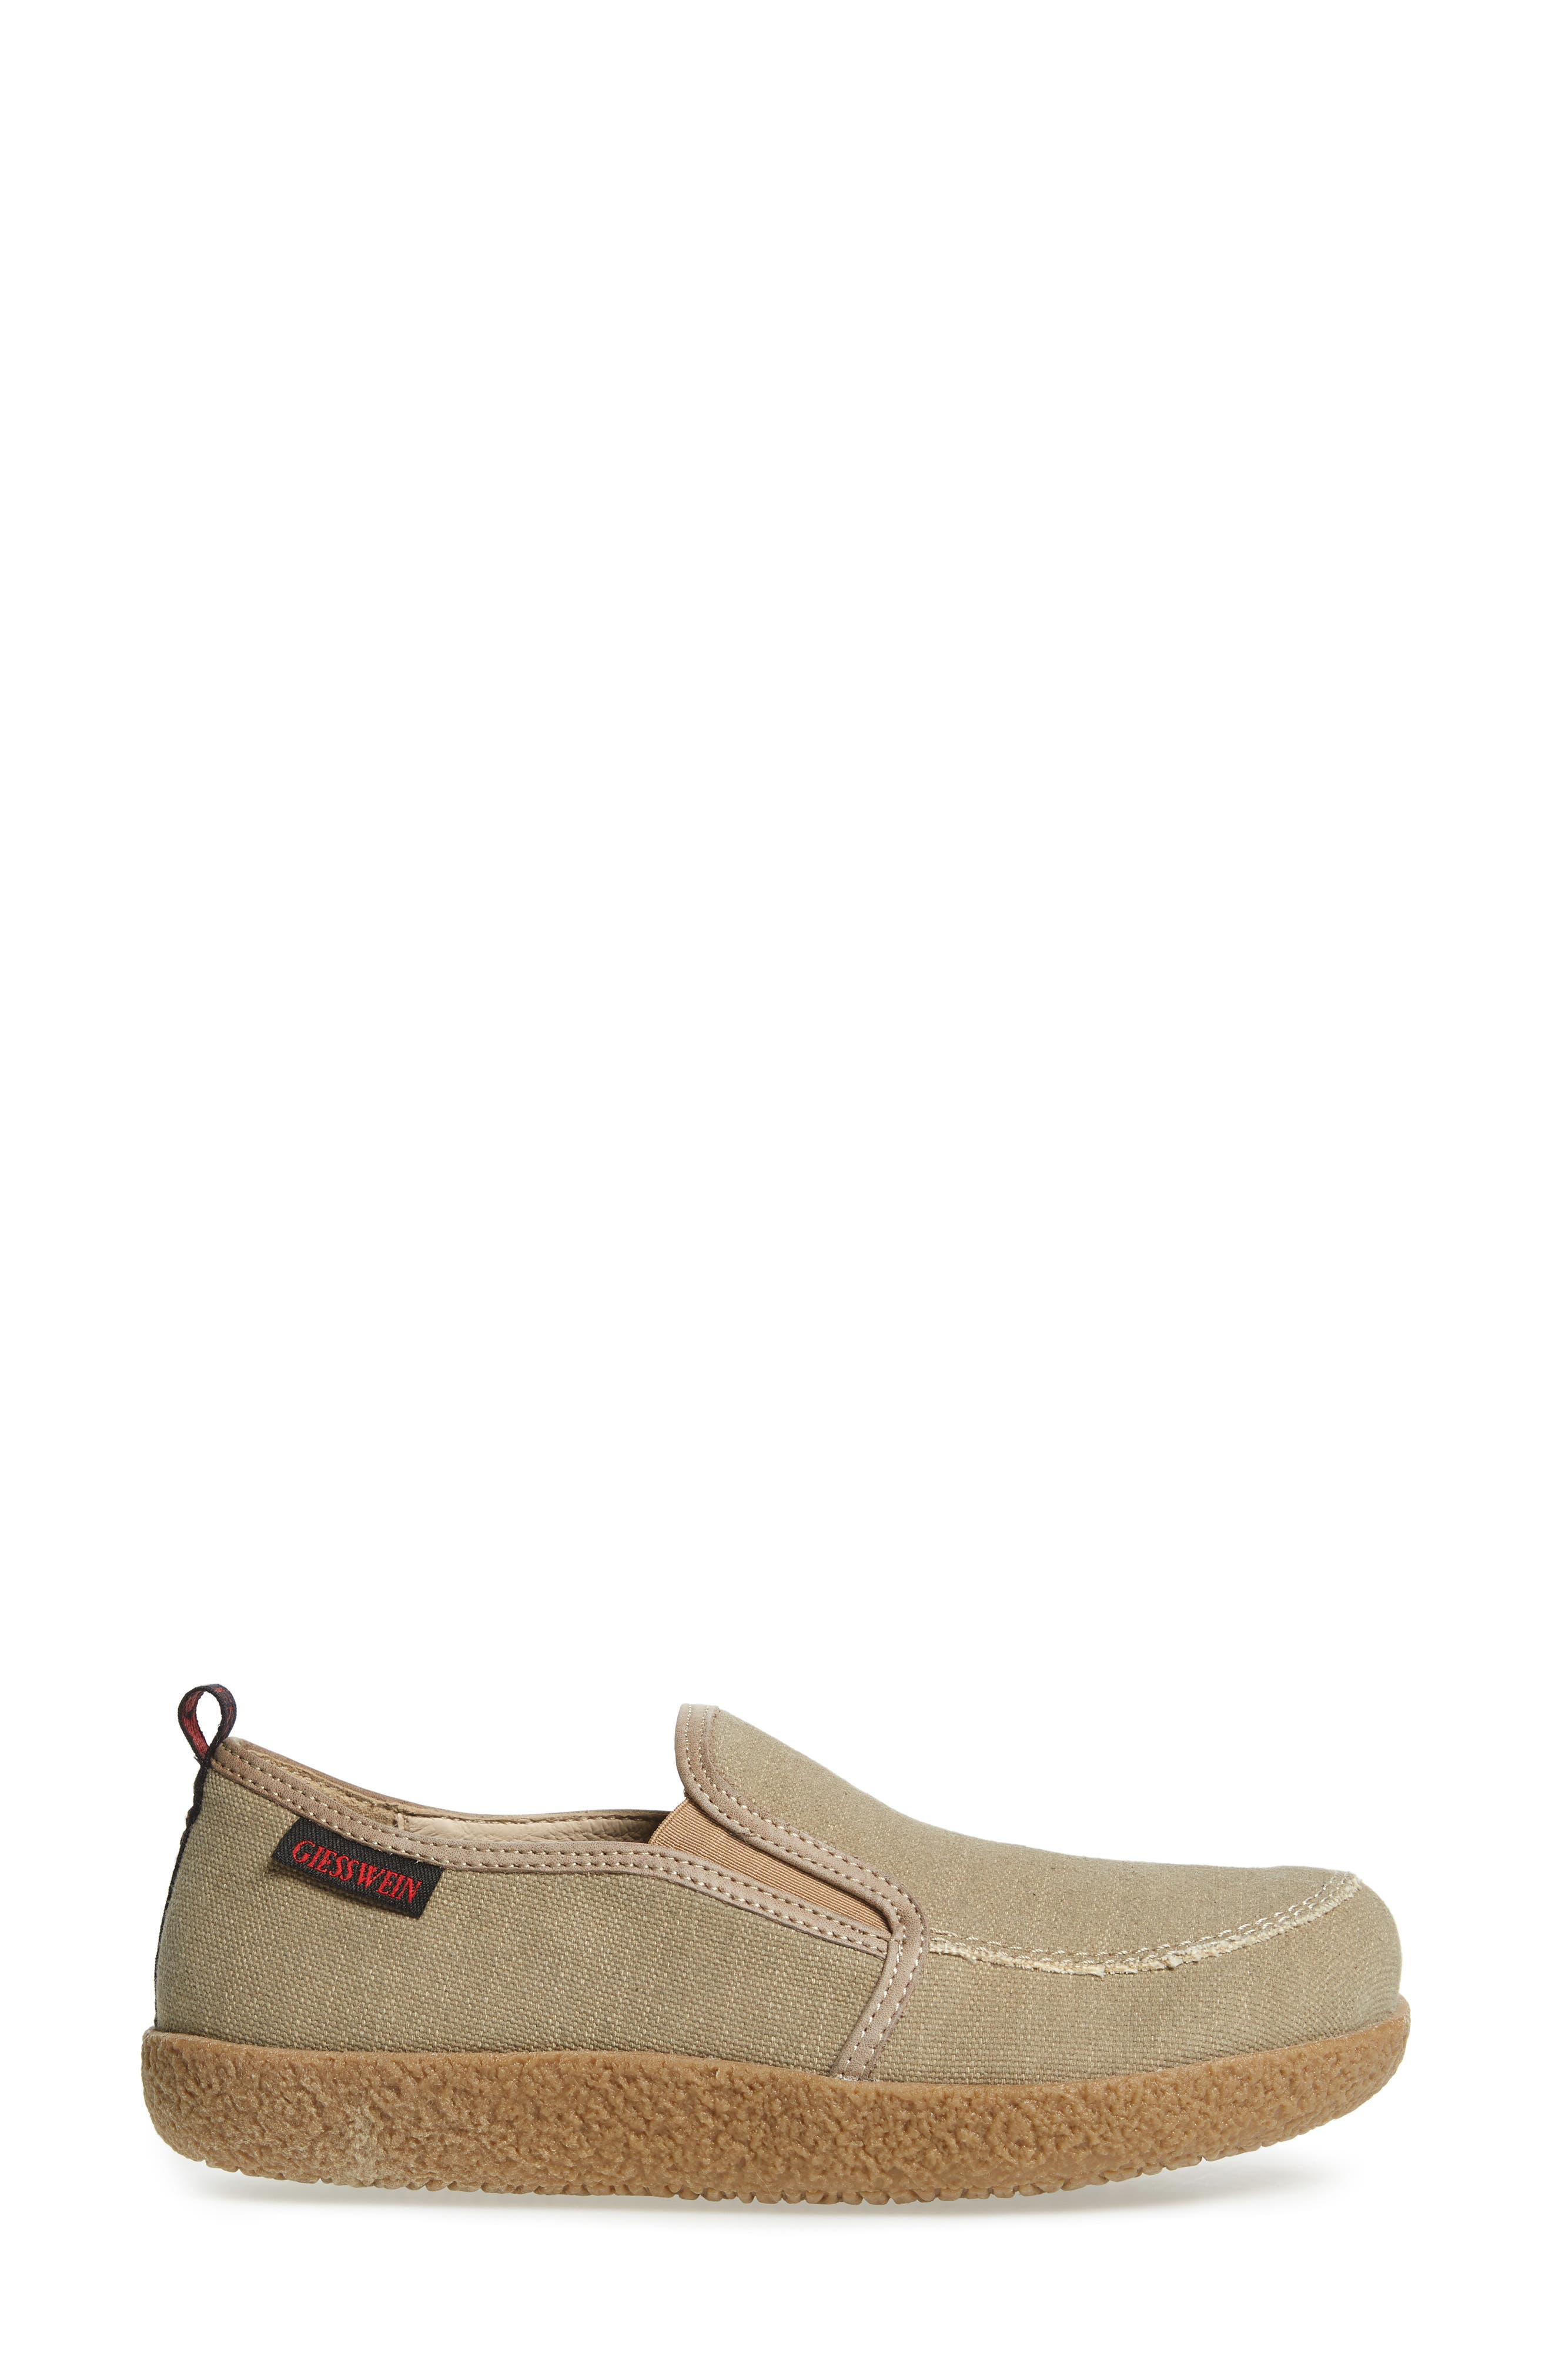 Reith Loafer,                             Alternate thumbnail 3, color,                             Sesame Leather